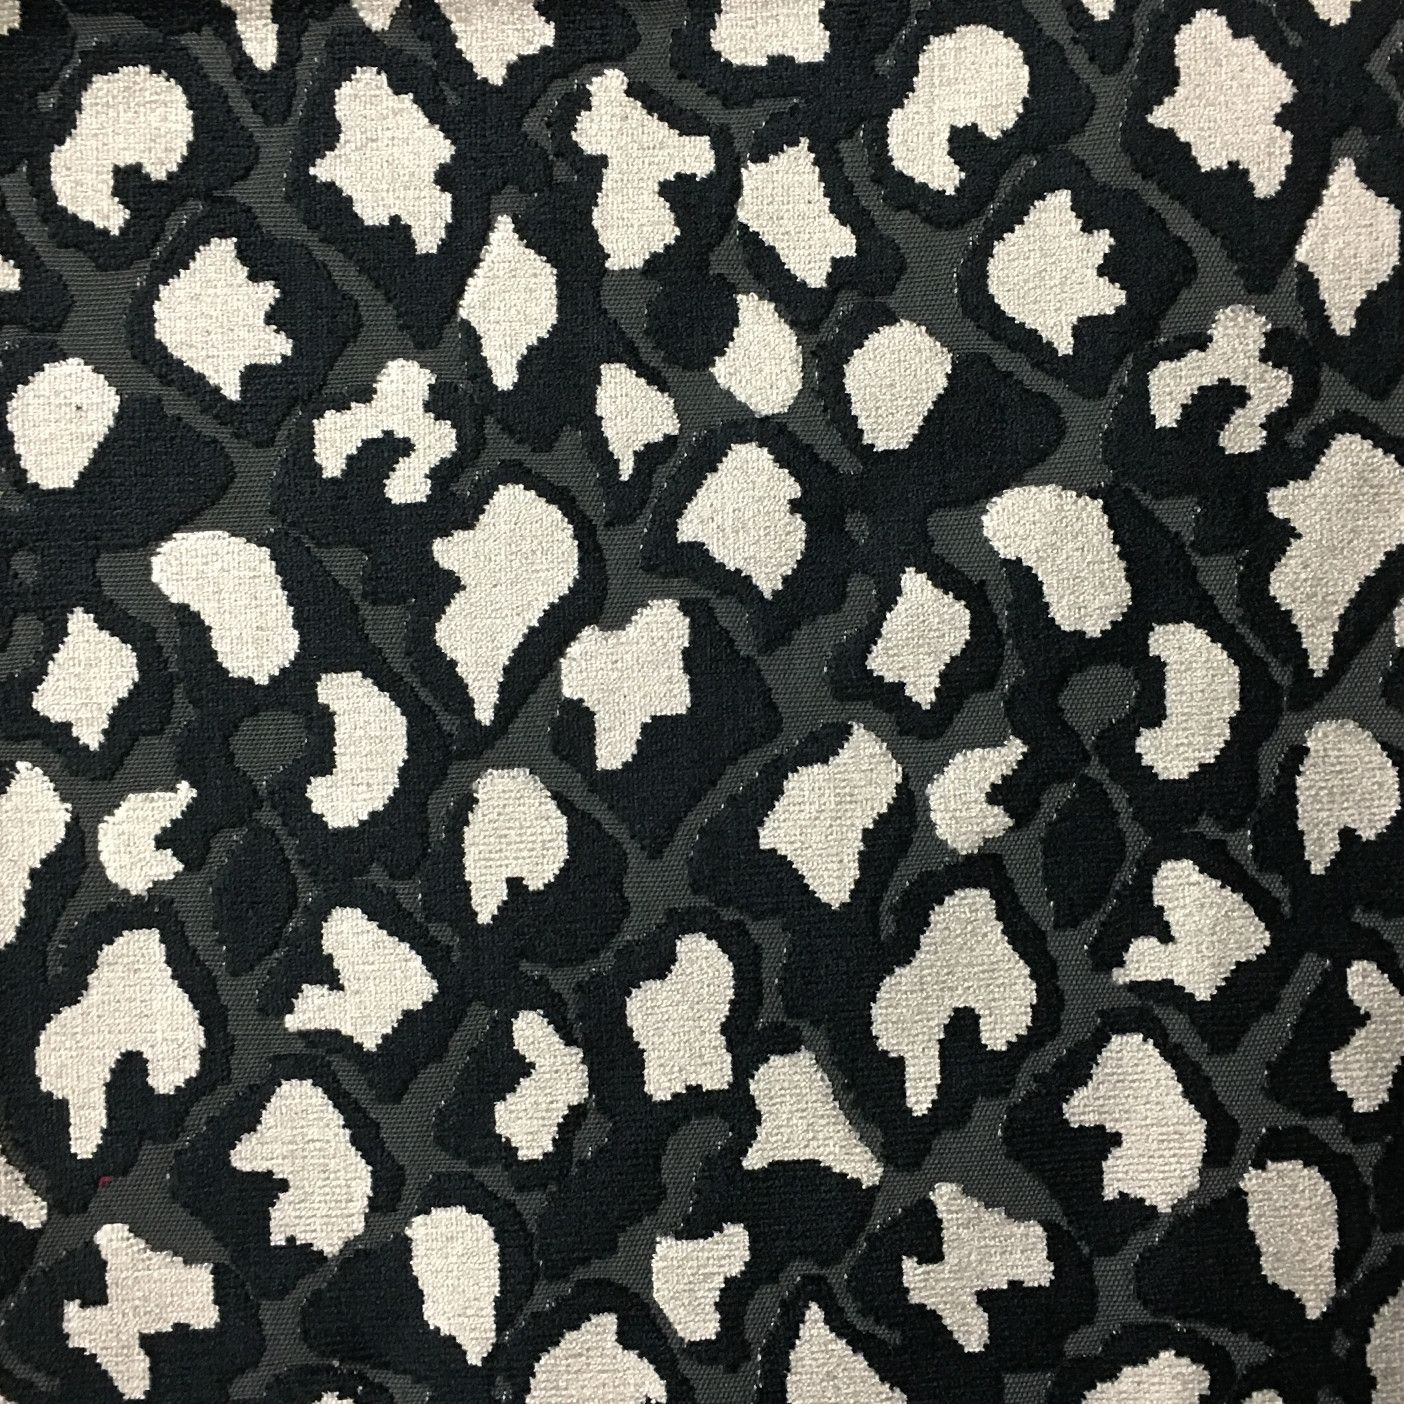 Hendrix Leopard Print Cut Velvet Fabric Upholstery By The Yard Available In 15 Colors Domino Top 1